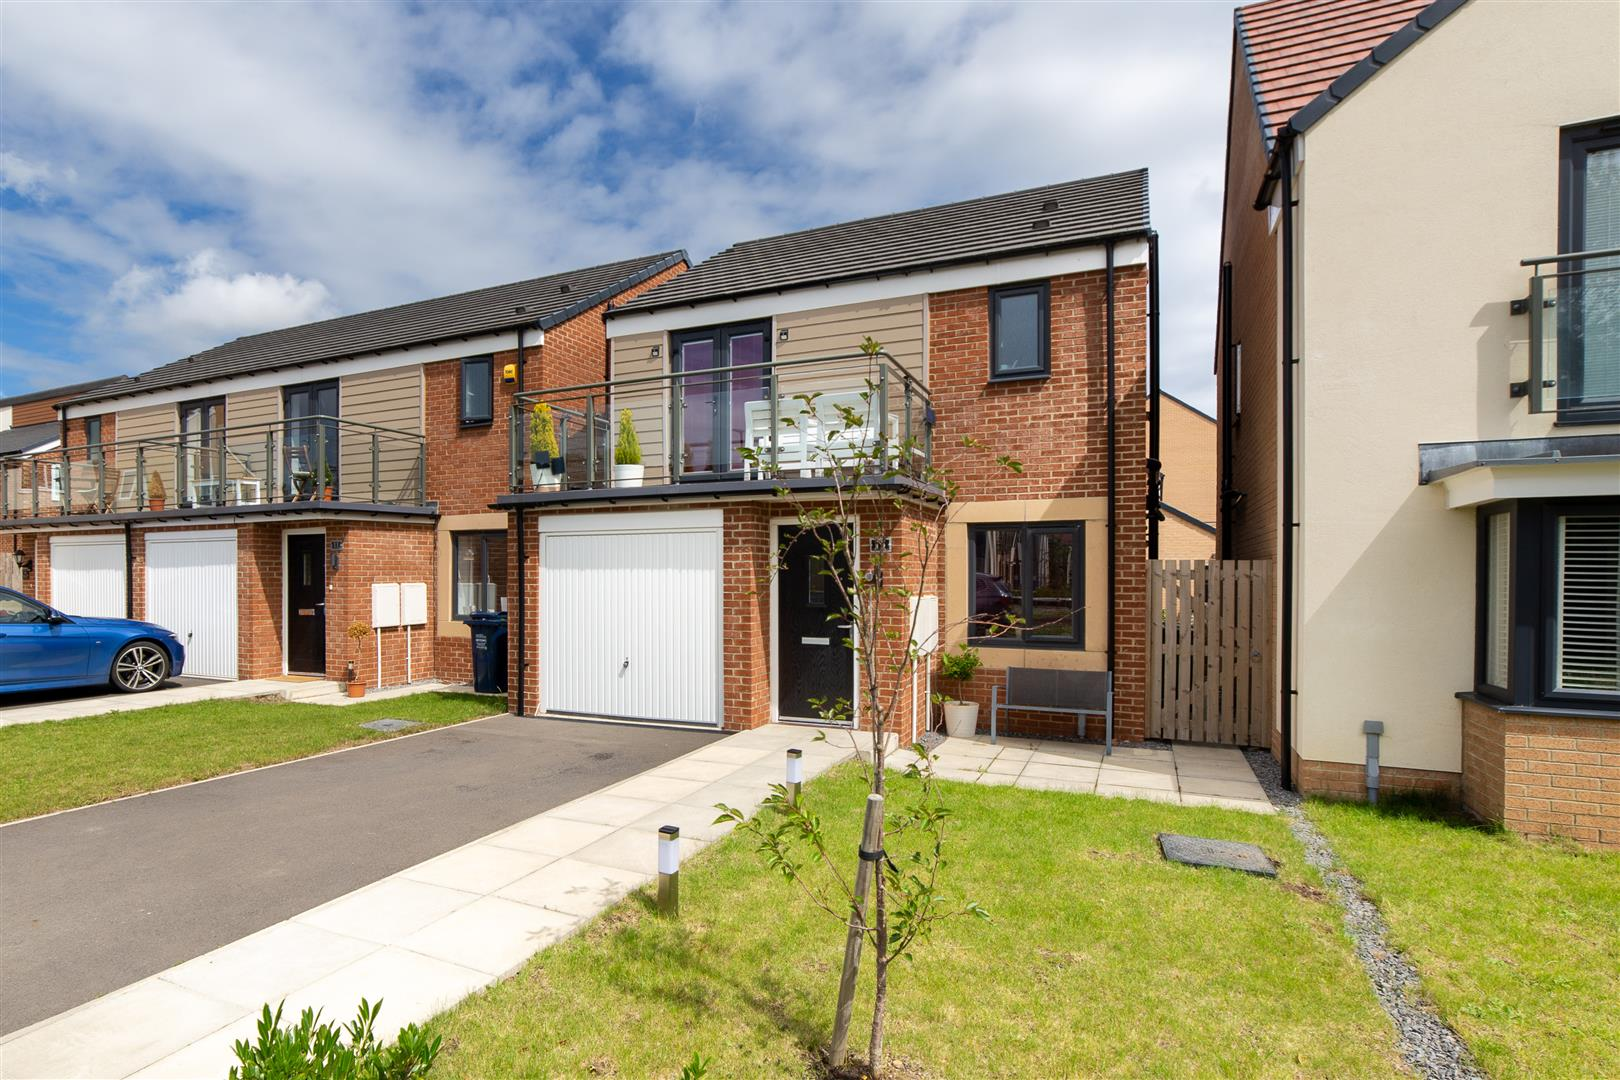 3 bed detached house for sale in Newcastle Upon Tyne, NE13 9DQ - Property Image 1